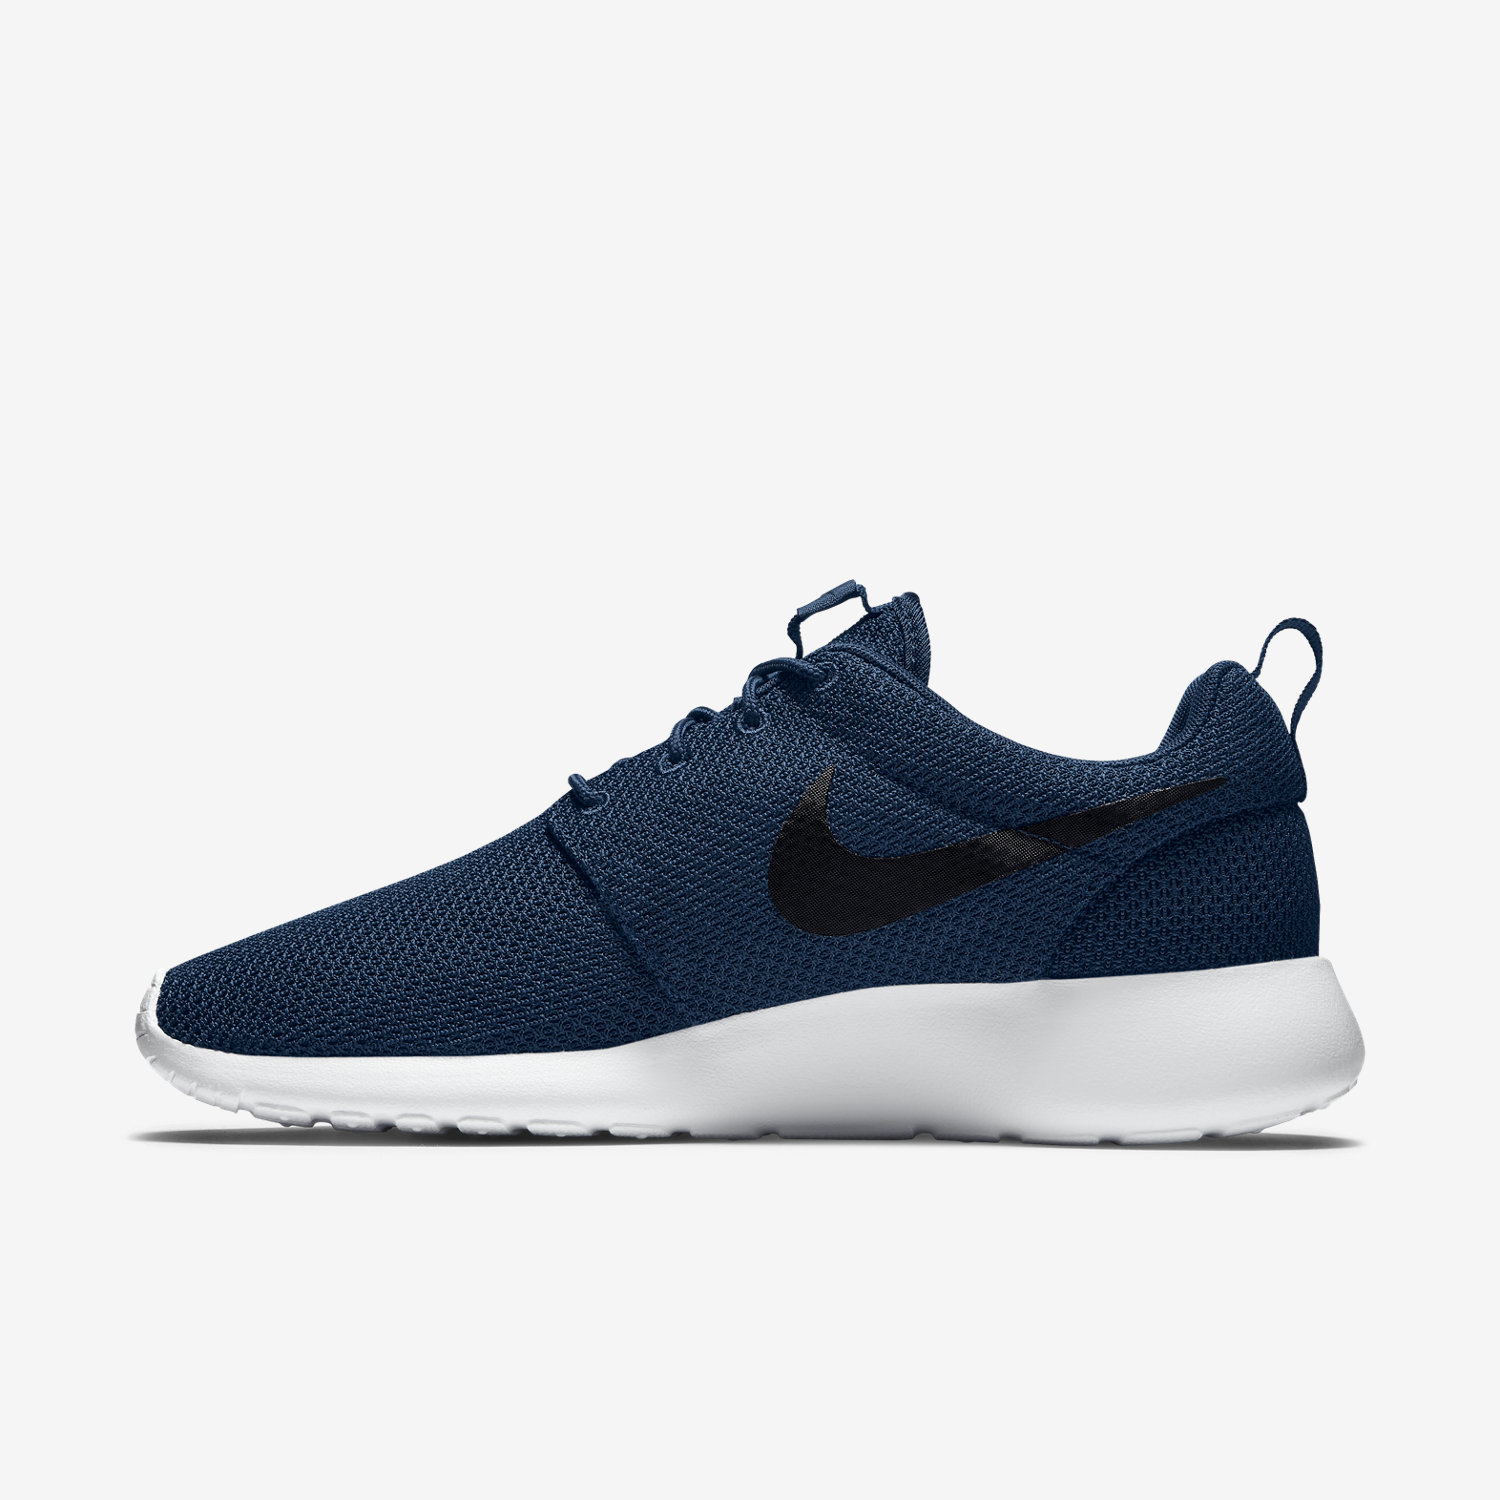 Nike Roshe One Navy Blue